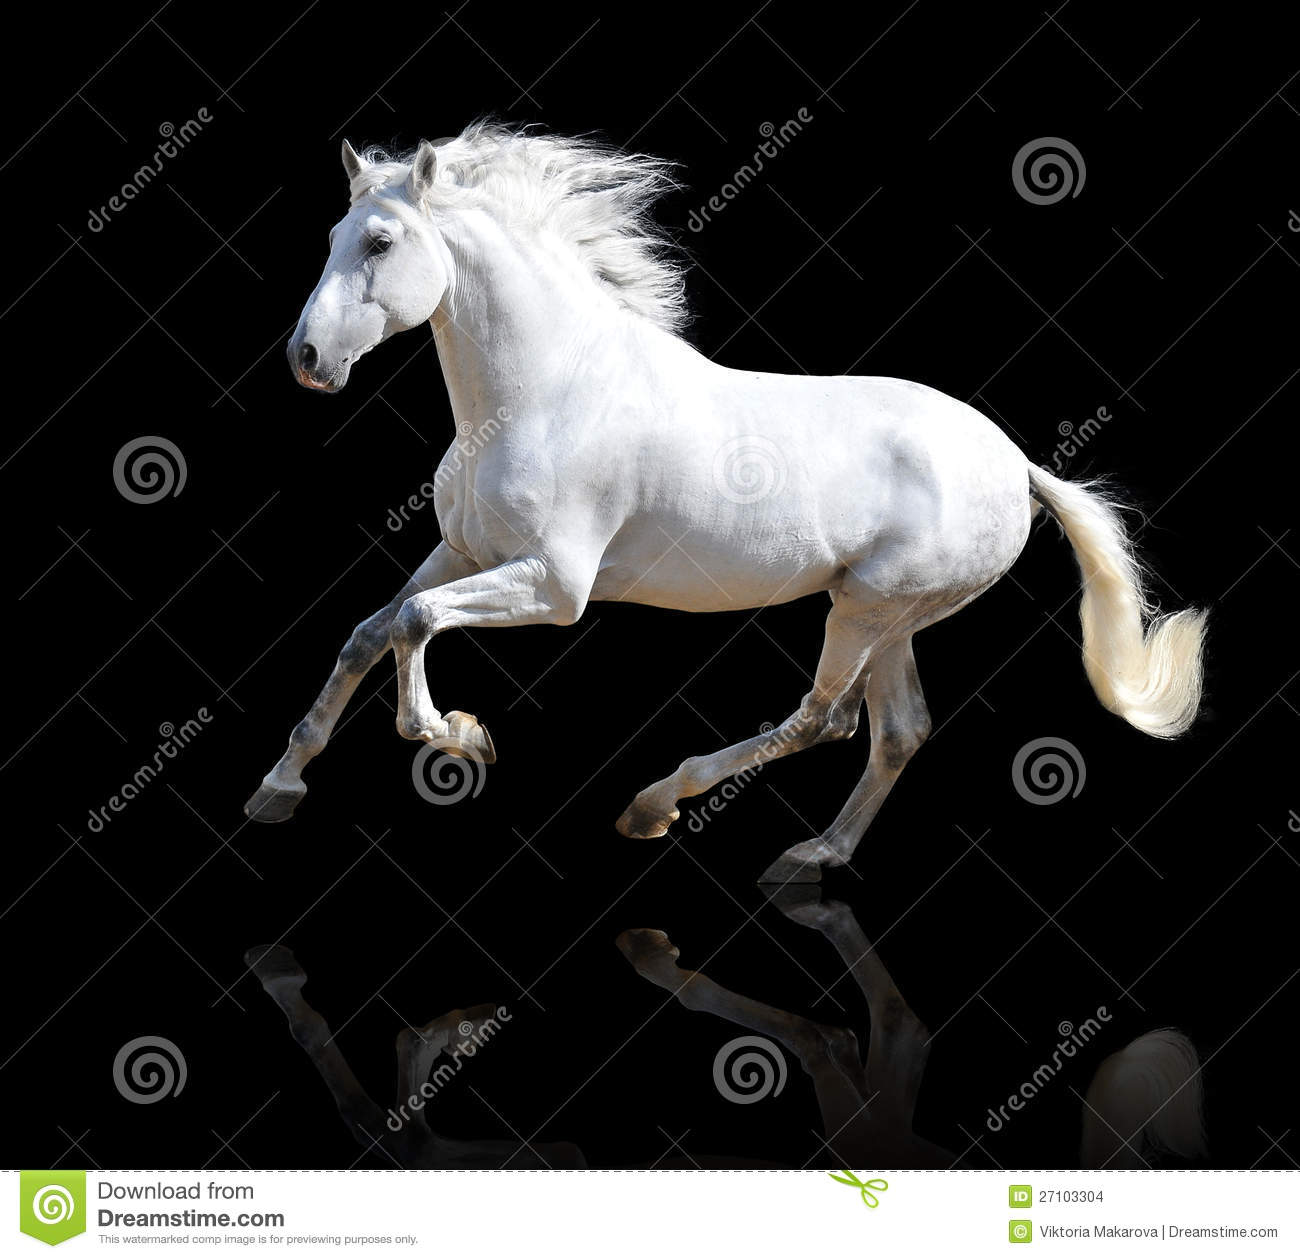 White horse on the black